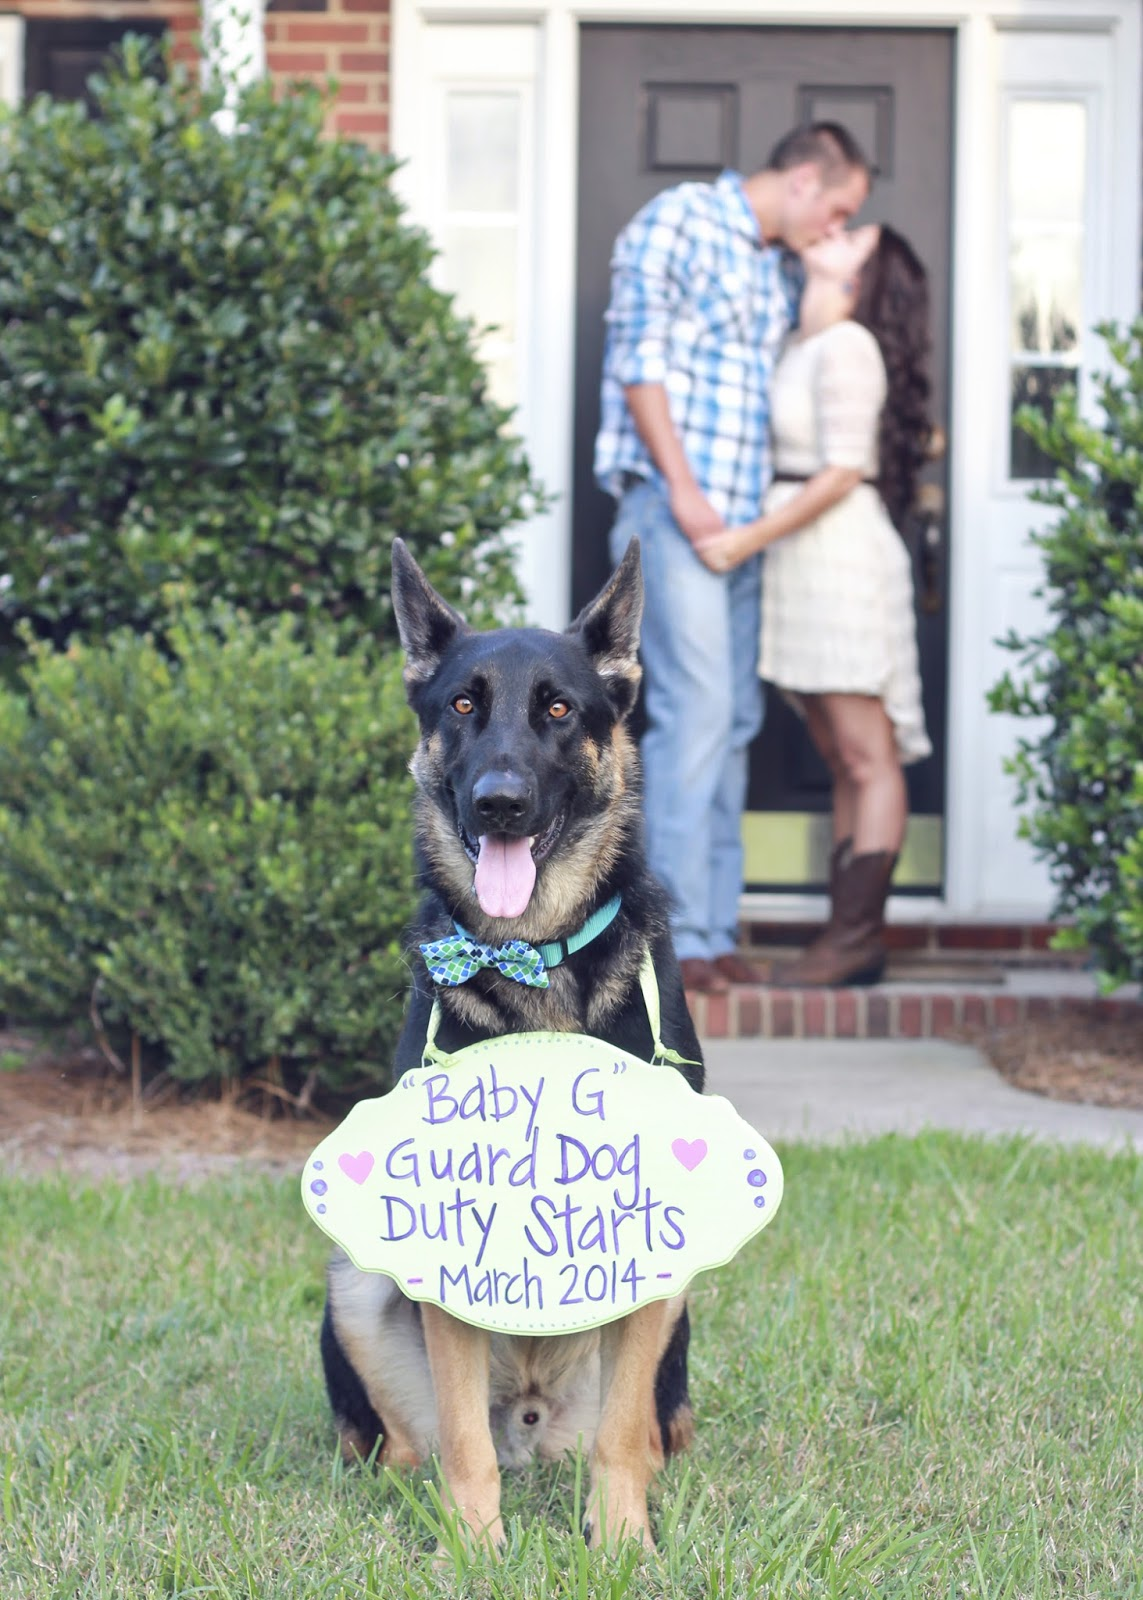 Sweet Little Nursery: 10 Great Pregnancy Announcement Pictures